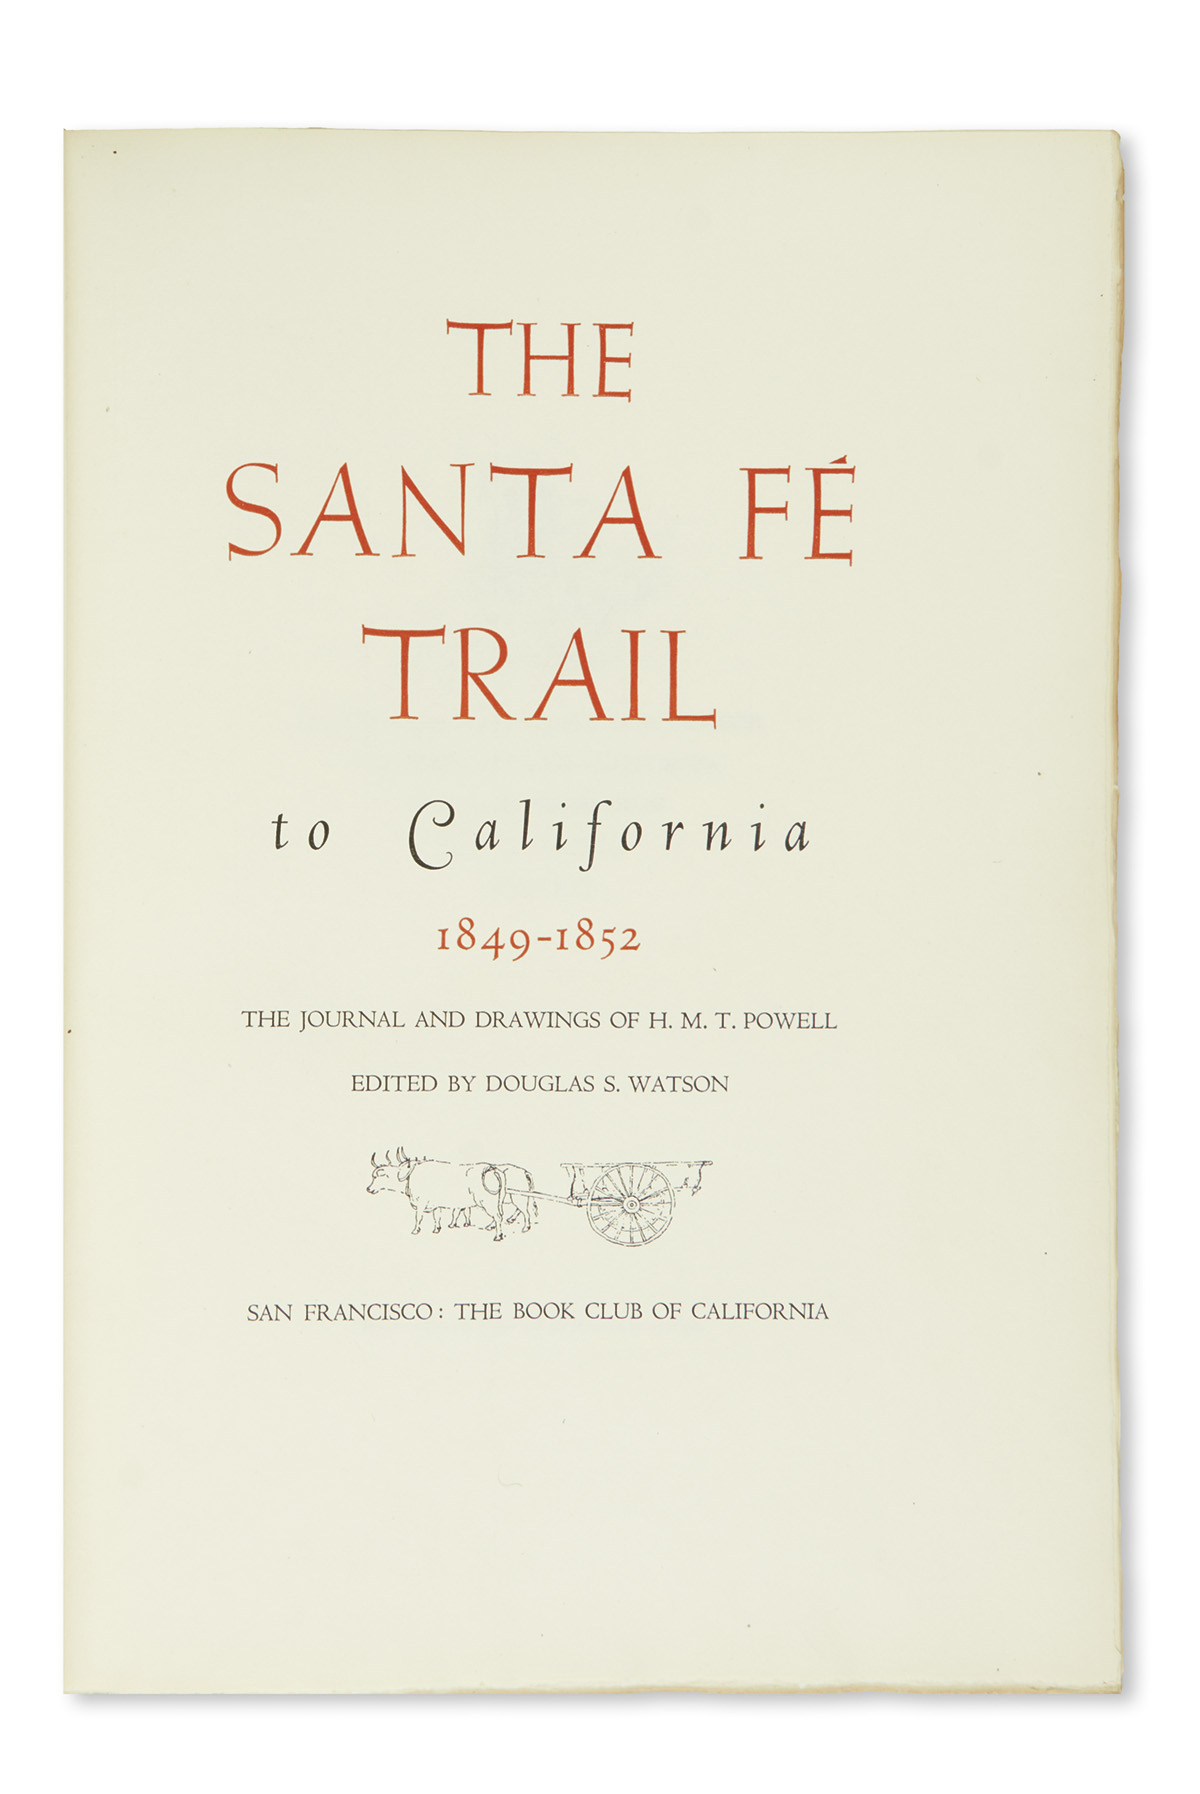 (WEST)-Watson-Douglas-S;-editor-The-Santa-Fé-Trail-to-California-1849-1852-The-Journal-and-Drawings-of-HMT-Powell